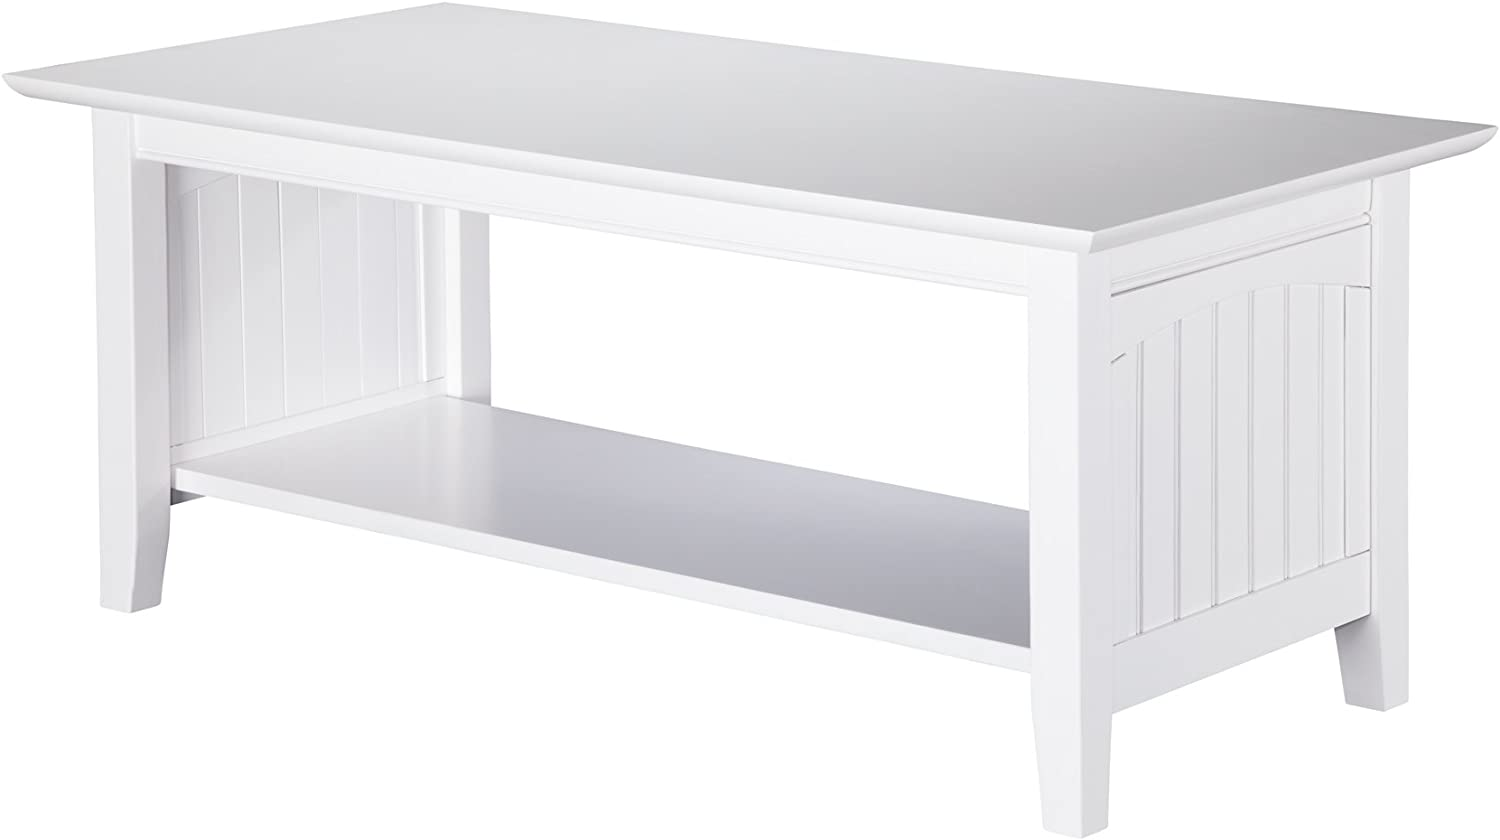 Atlantic Furniture Nantucket Coffee Table, White